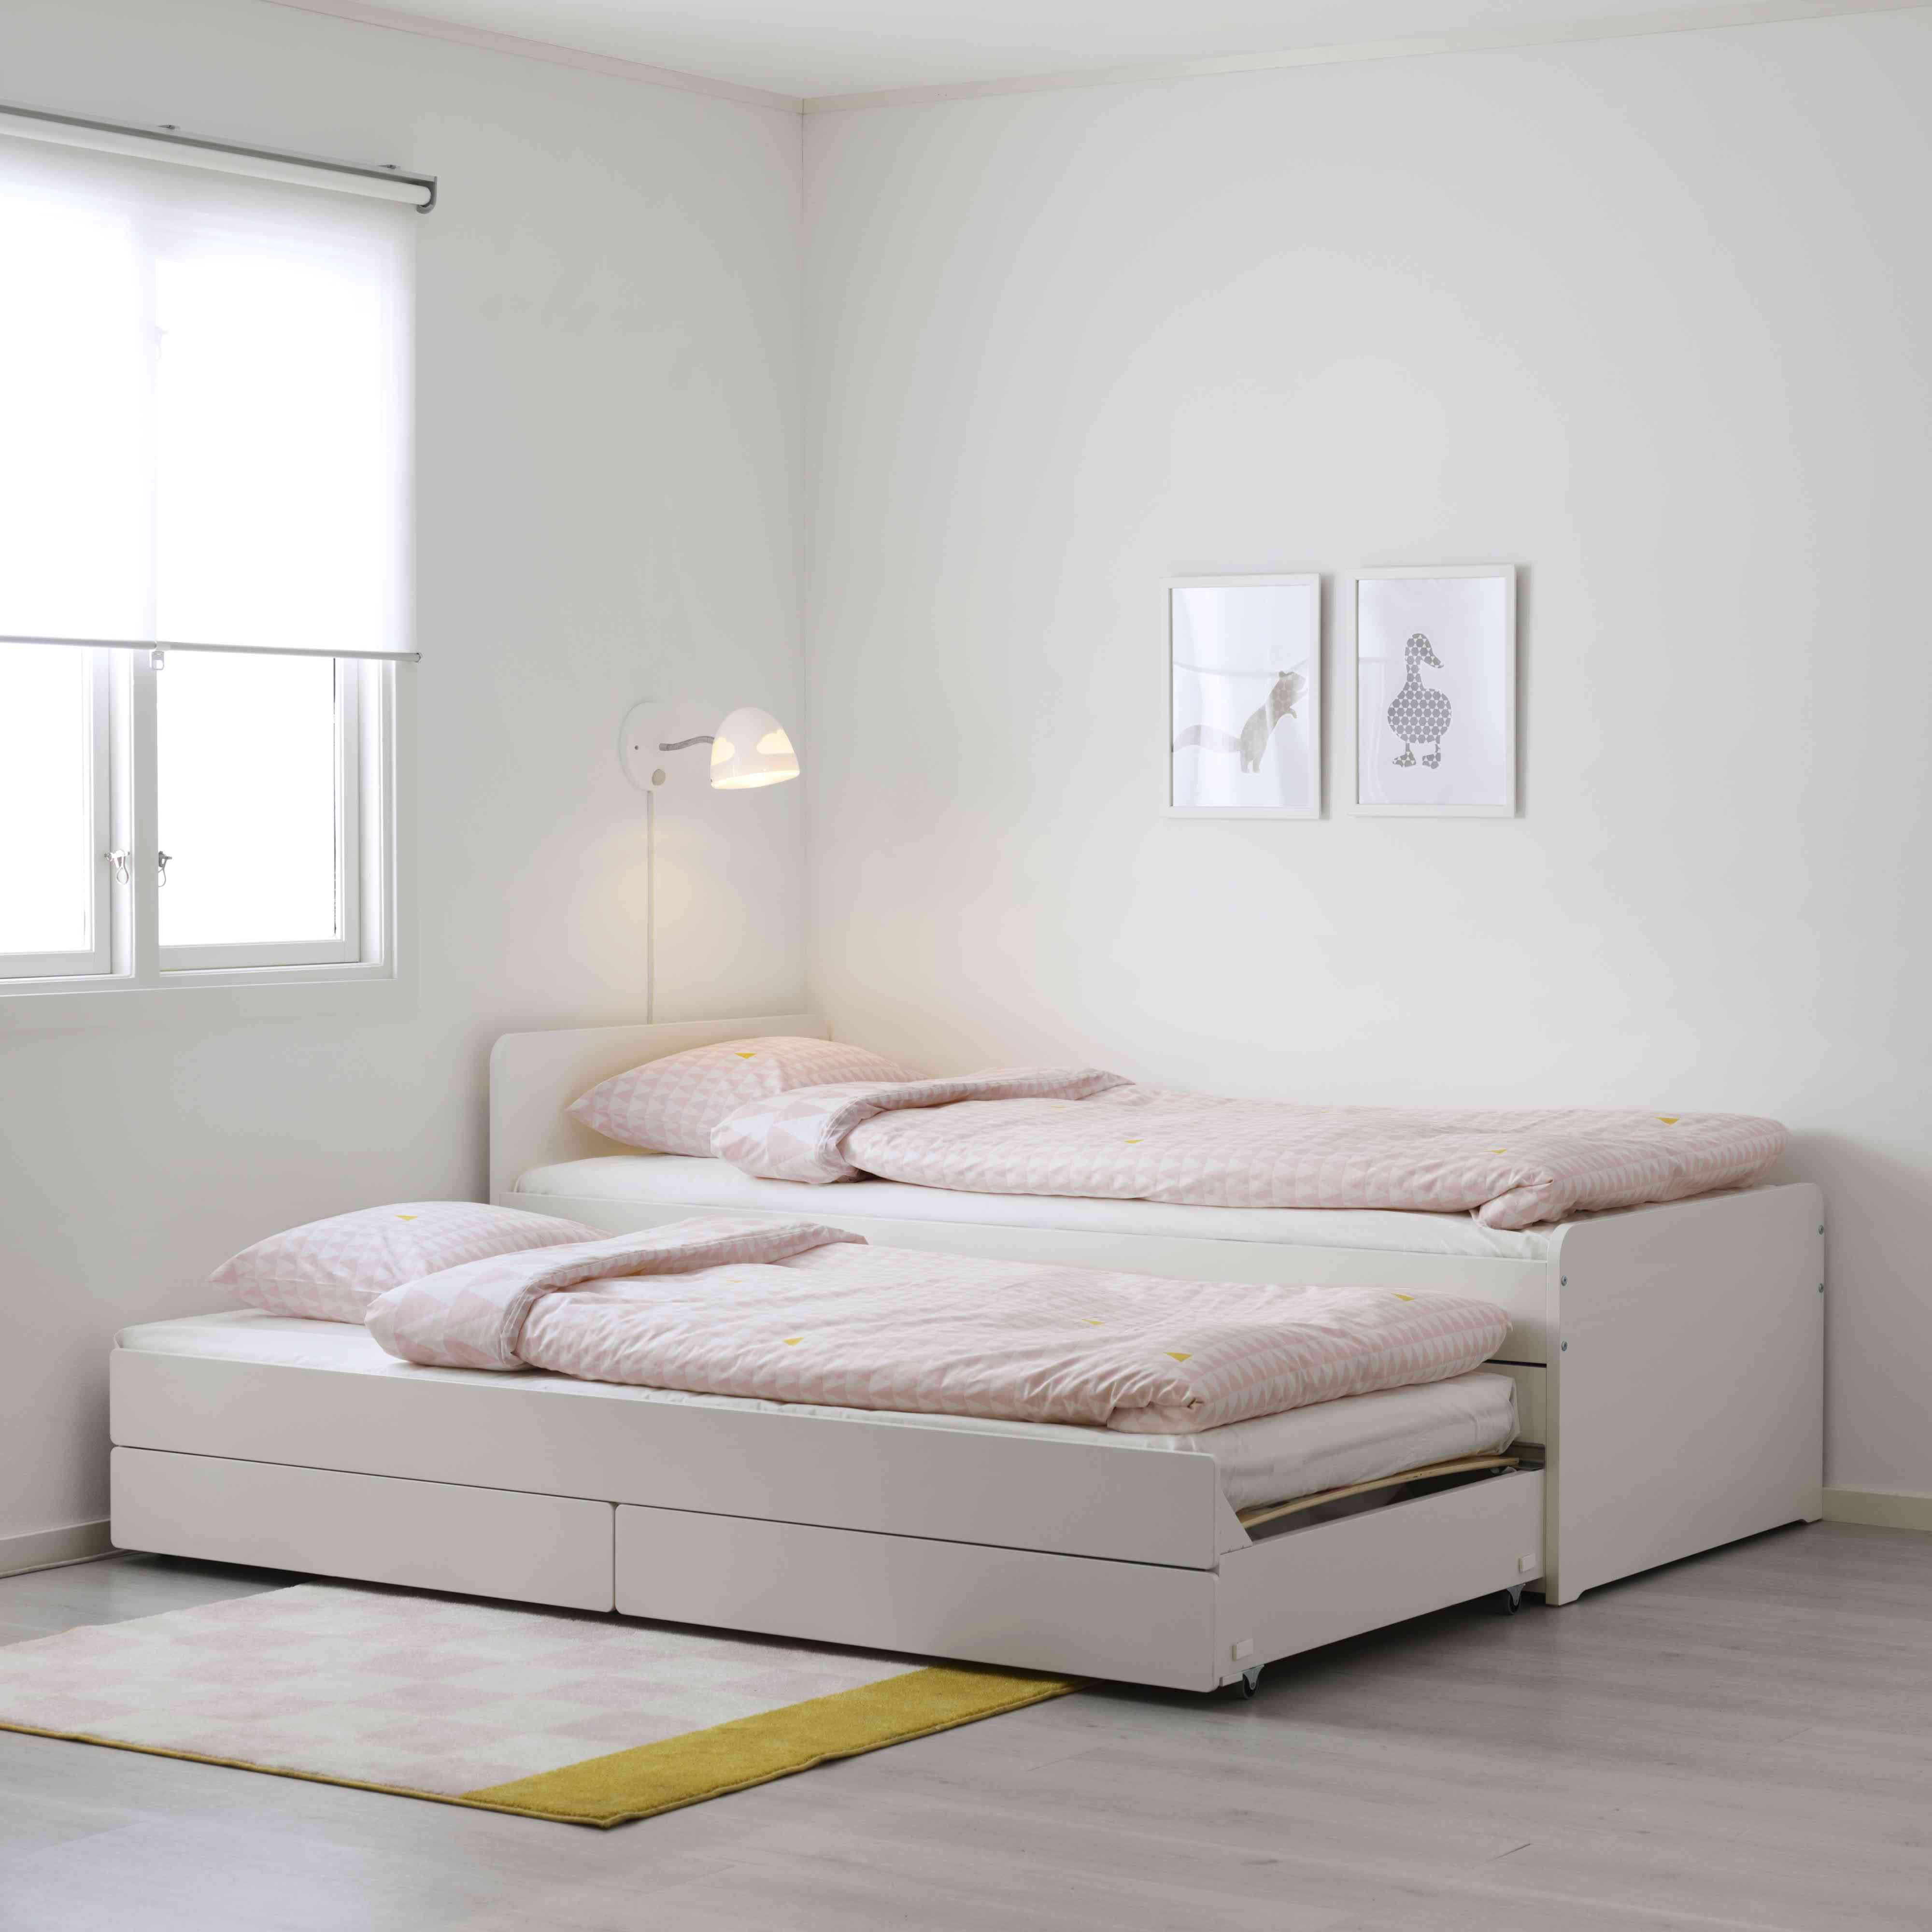 IKEA SLÄKT Bed Frame With Pull-Out Bed + Storage